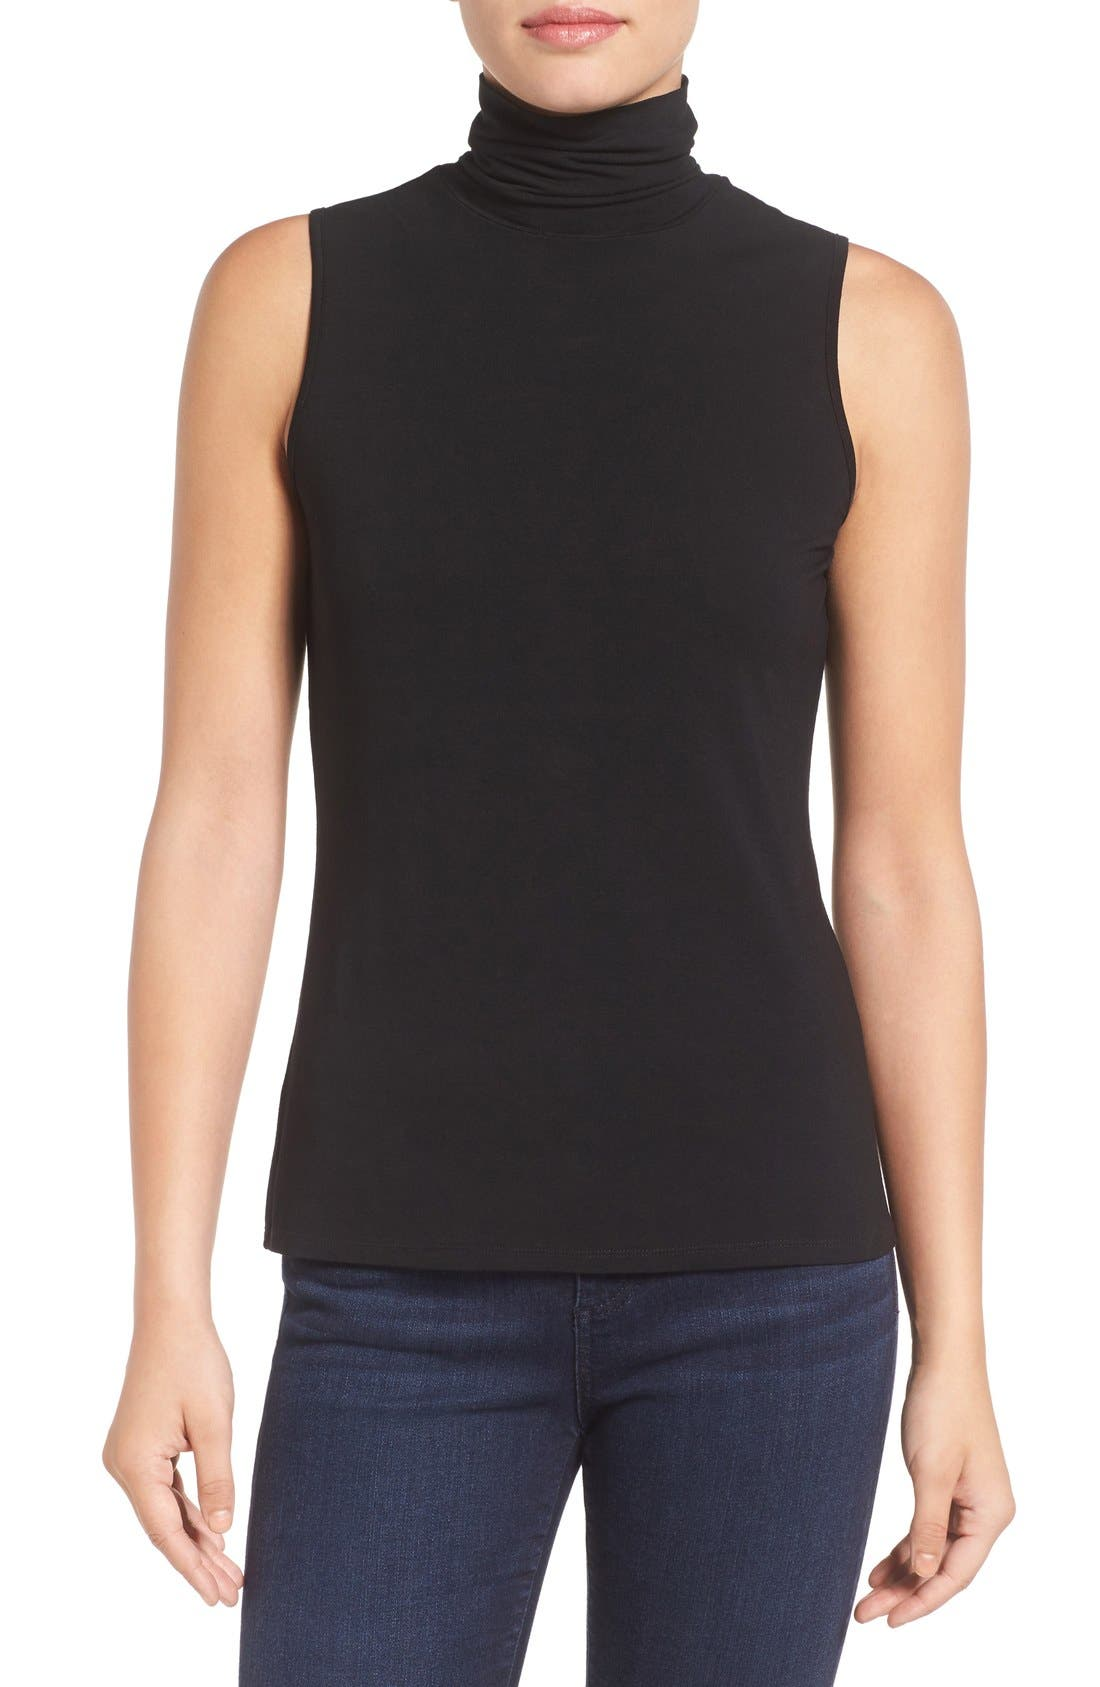 Alternate Image 1 Selected - Vince Camuto Sleeveless Turtleneck Top